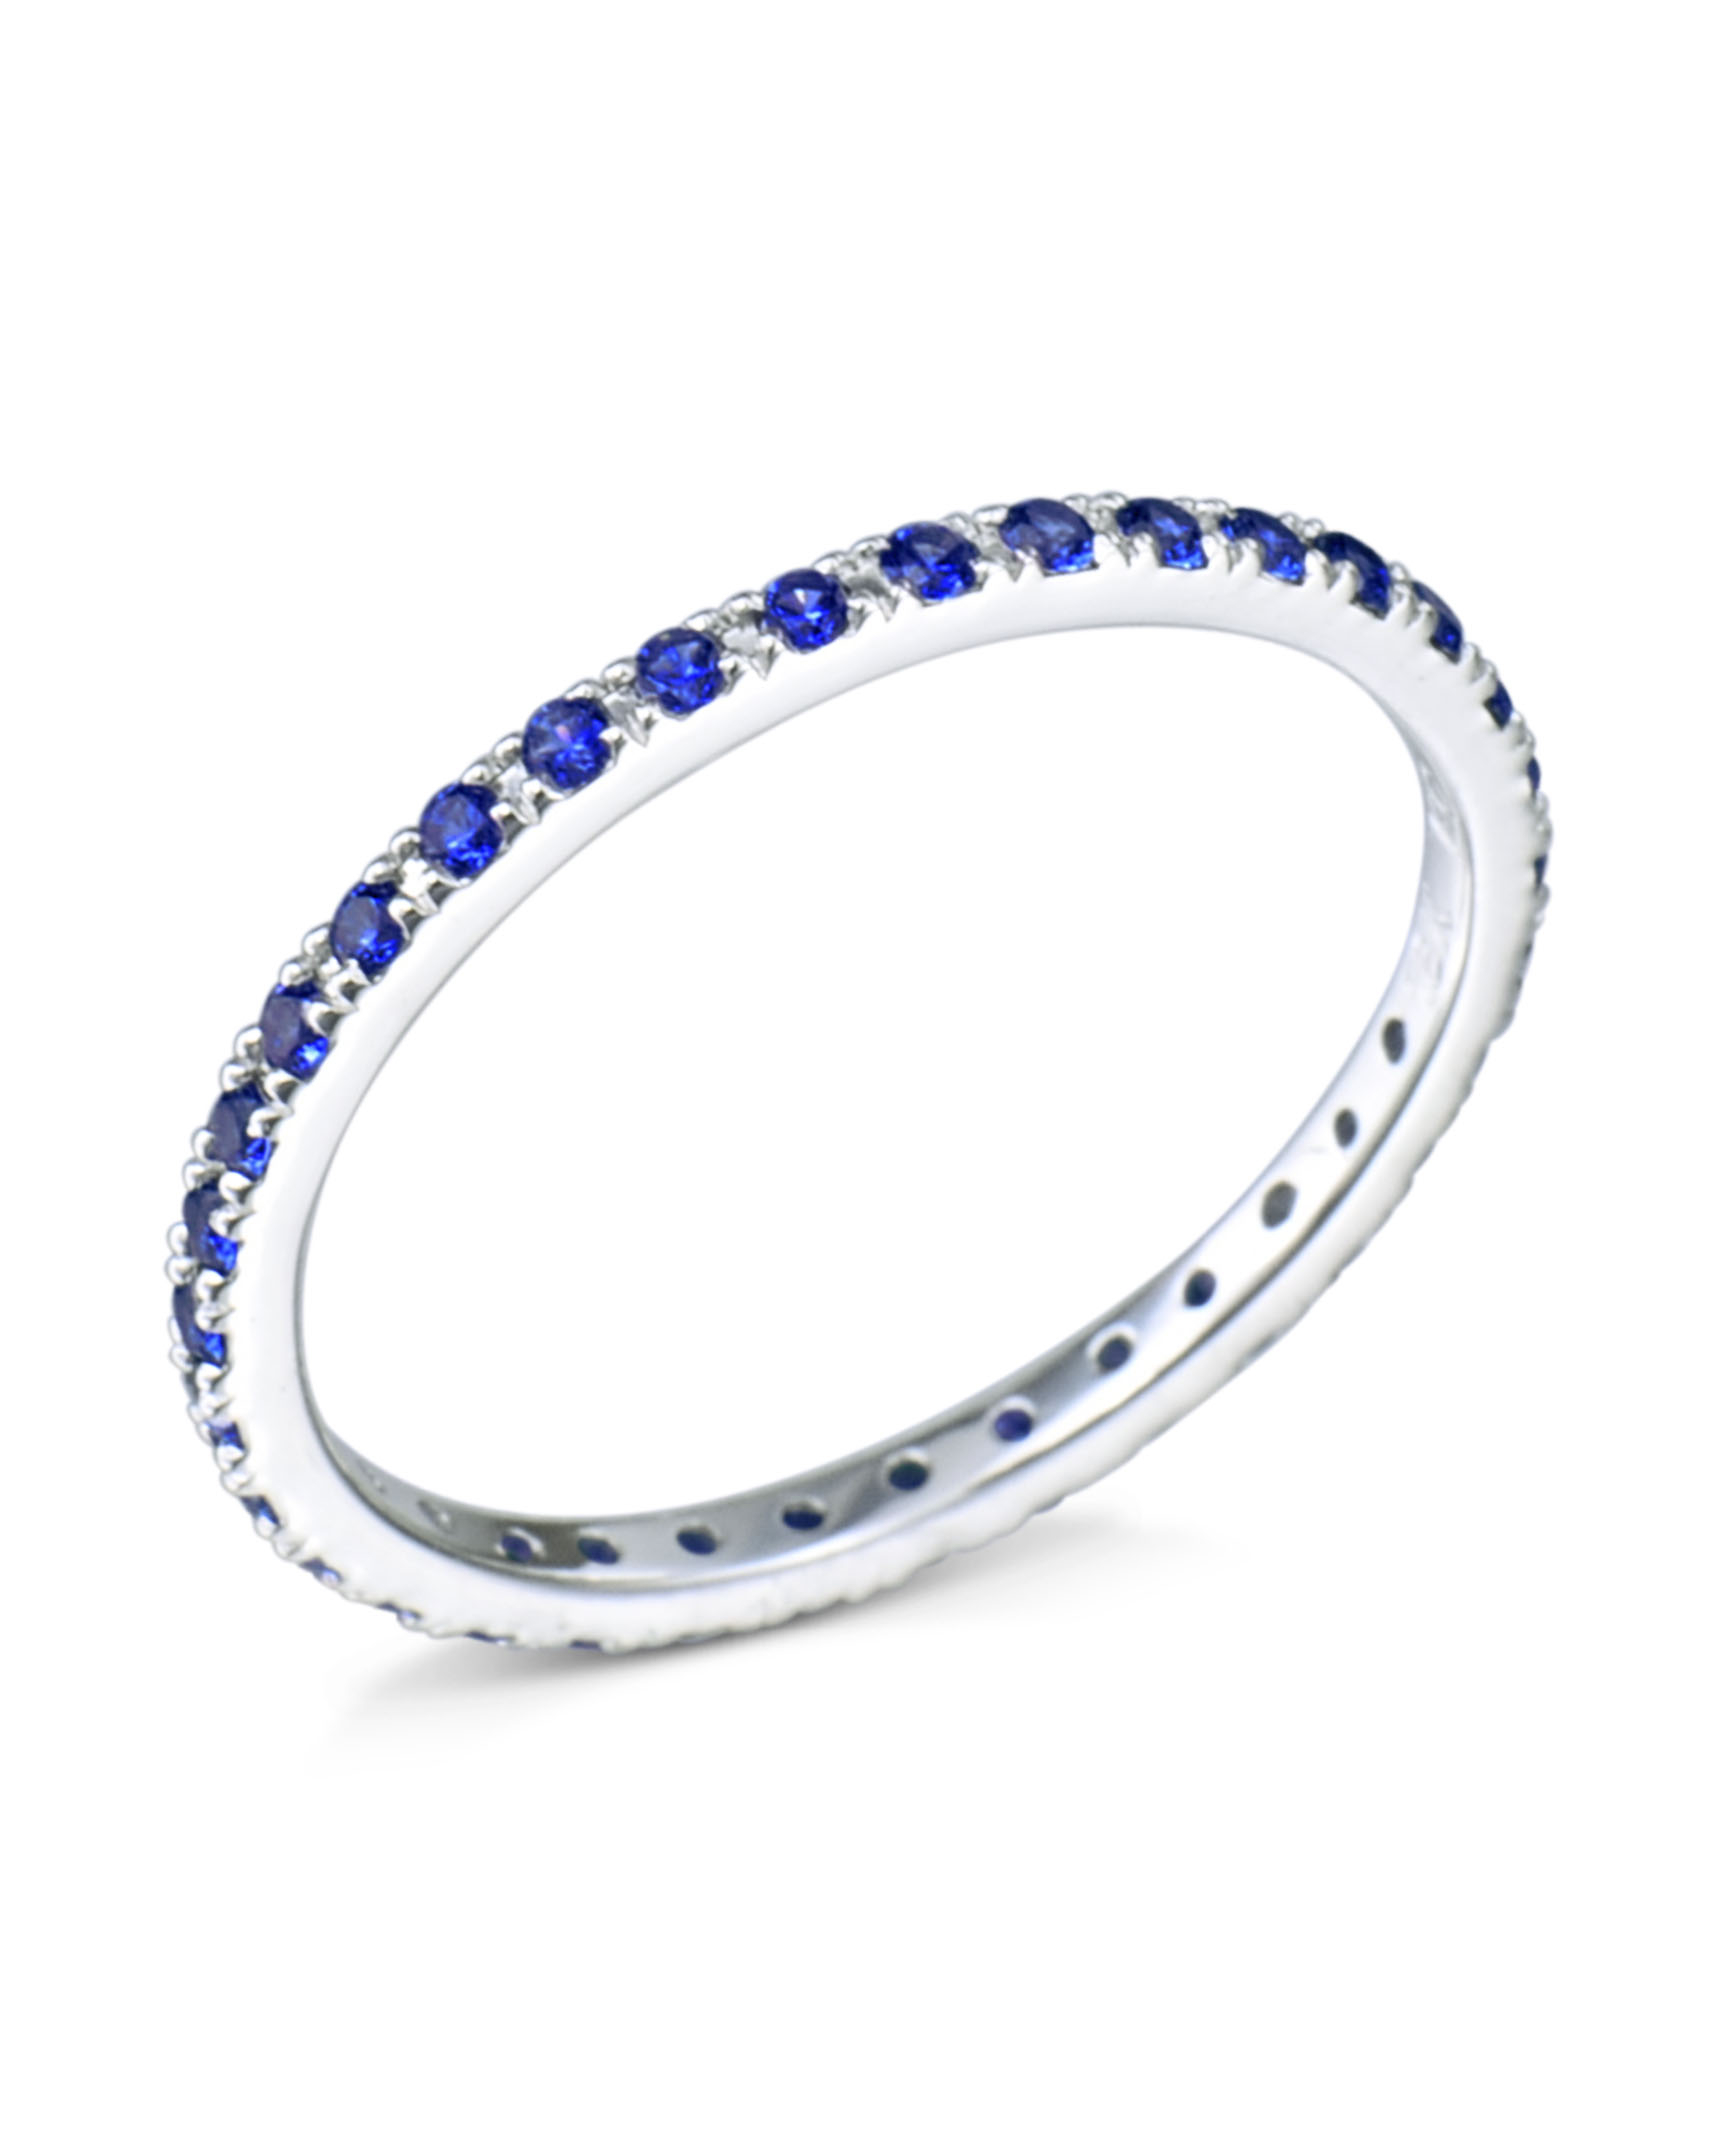 in band bands eternity sapphire other yellow bone dinosaur fossilized diamond ring platinum jewelry and